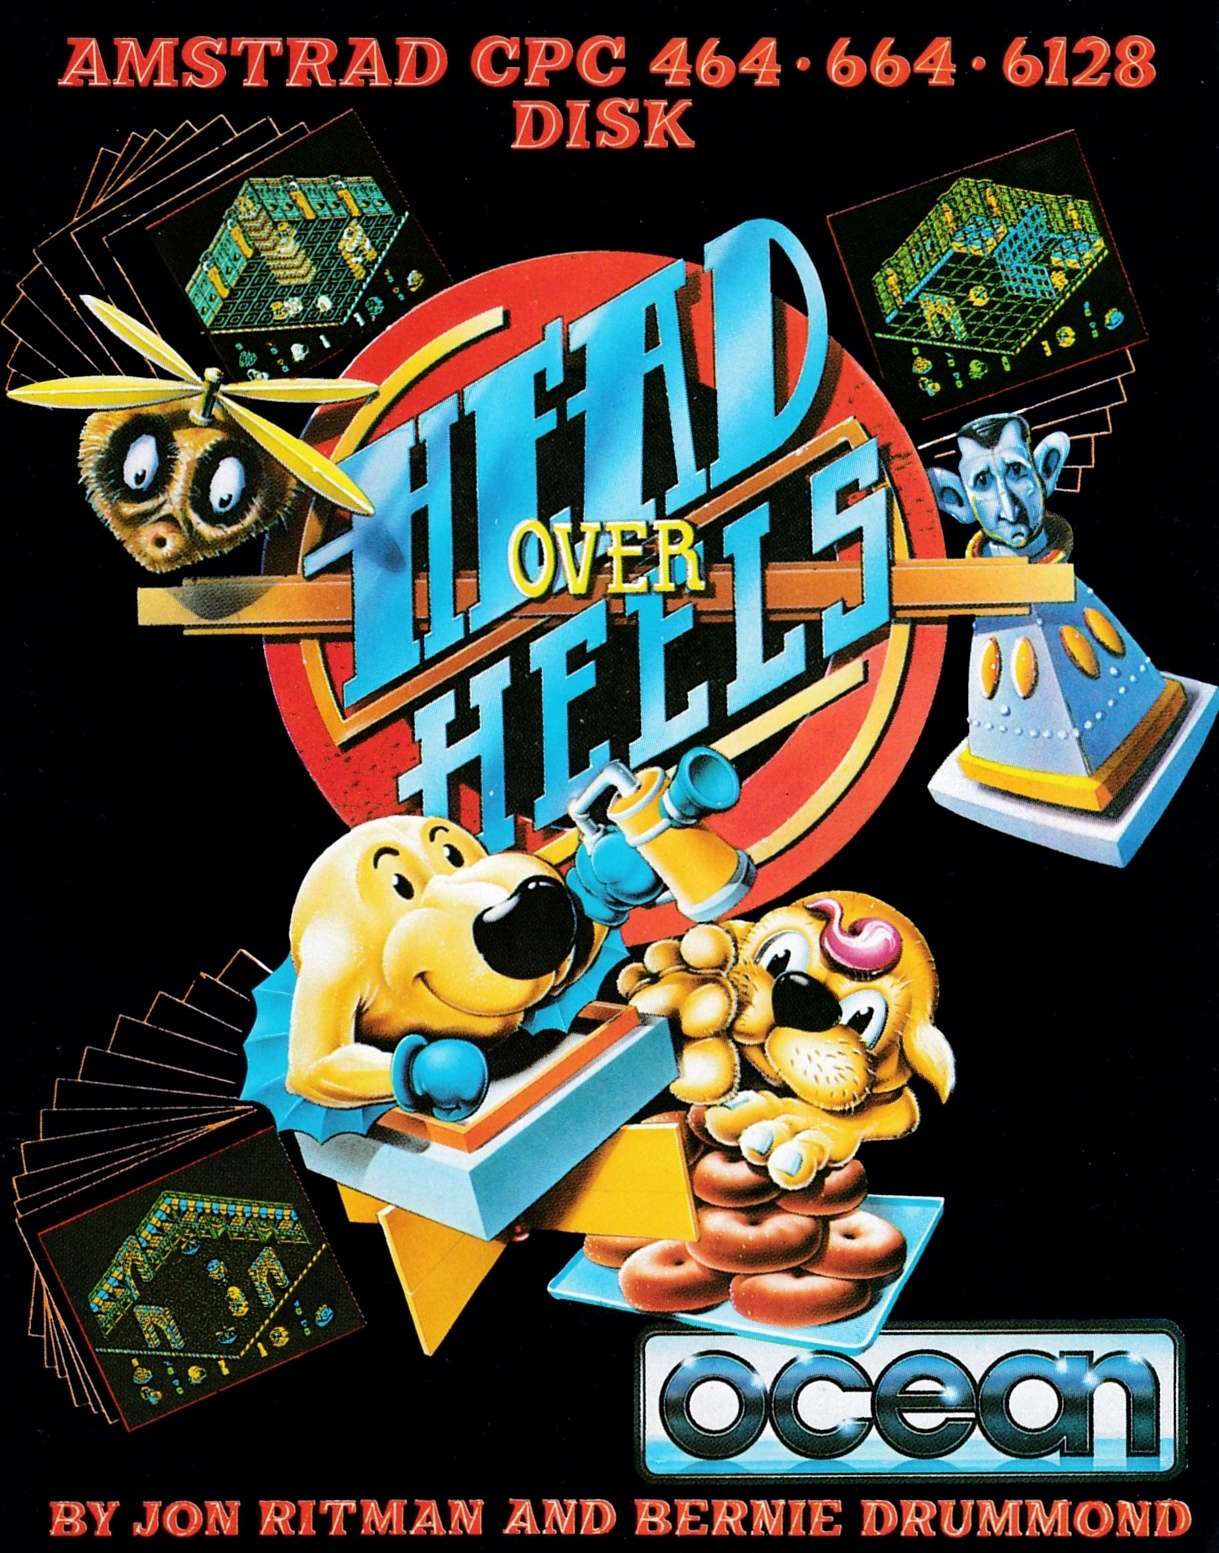 cover of the Amstrad CPC game Head Over Heels  by GameBase CPC